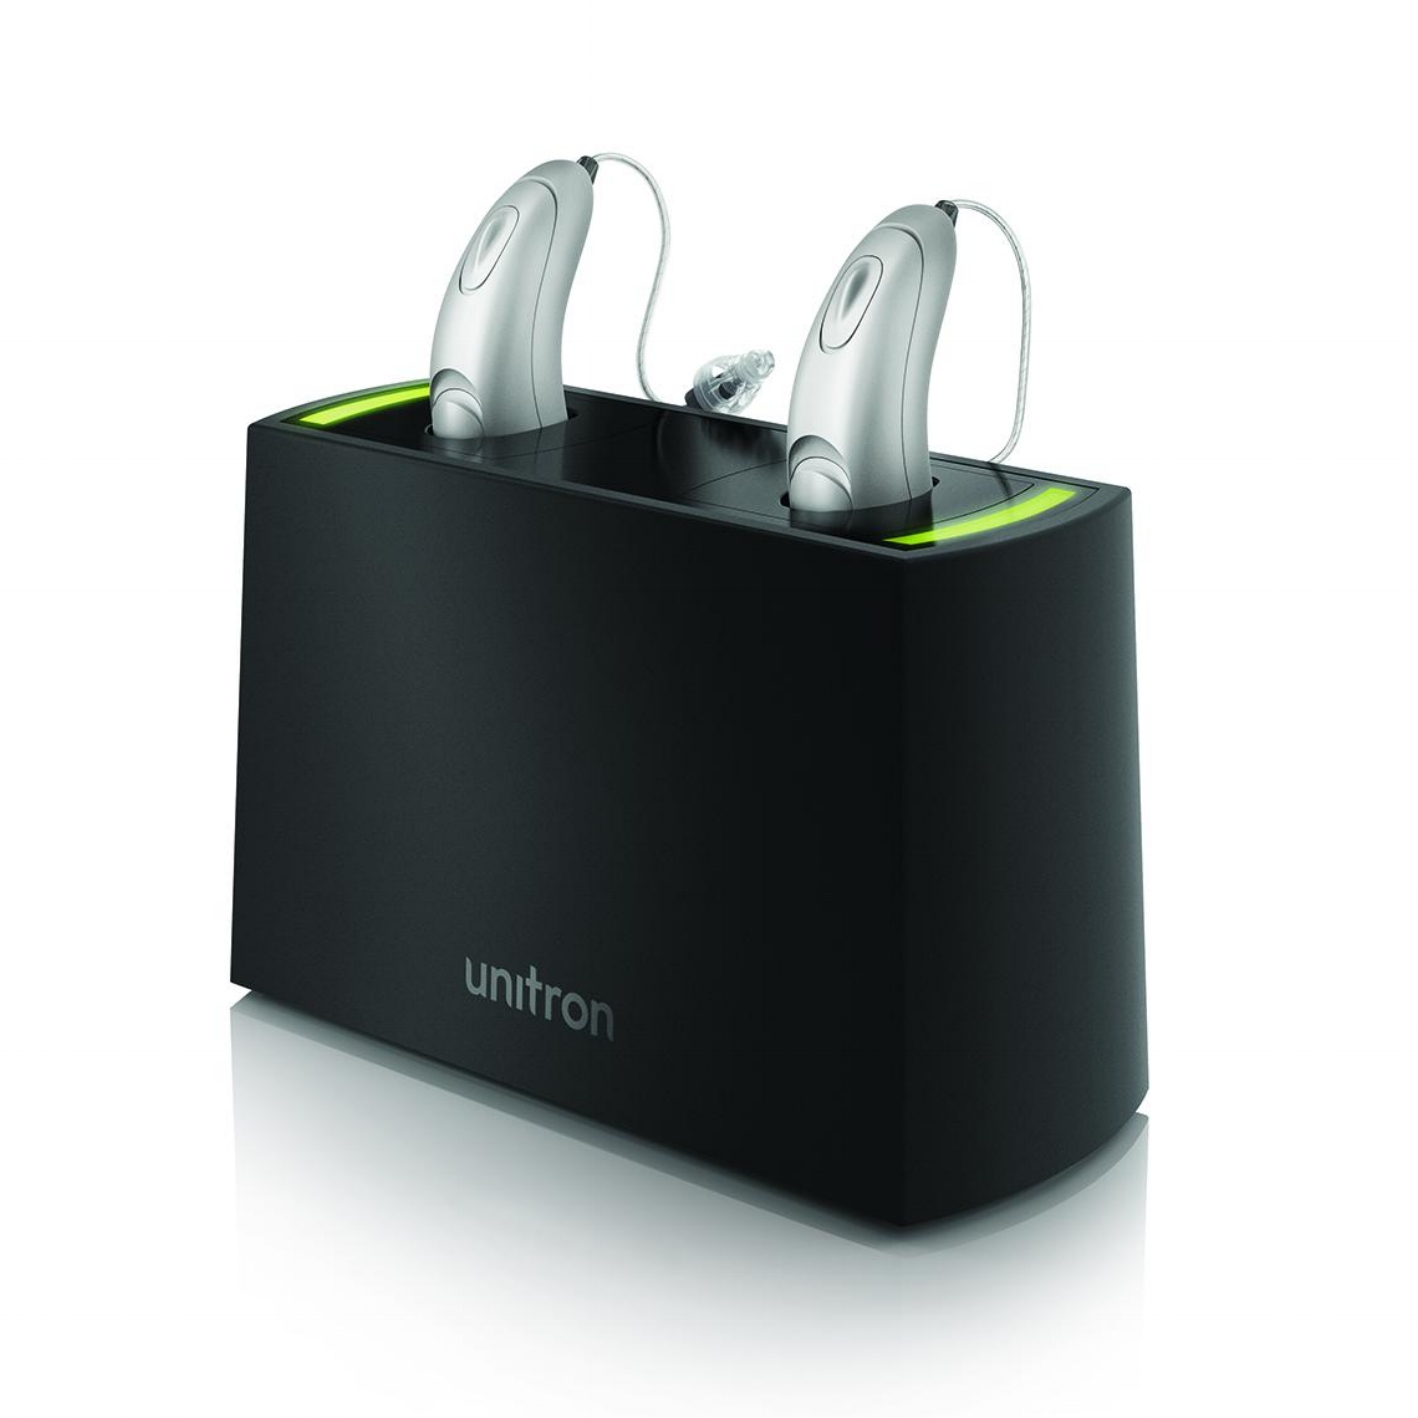 Convenience - Rechargeable hearing aids make it more convenient than ever to enjoy great hearing. Simply place them in the charger overnight and enjoy a full day of better hearing. No more small batteries to fuss with.